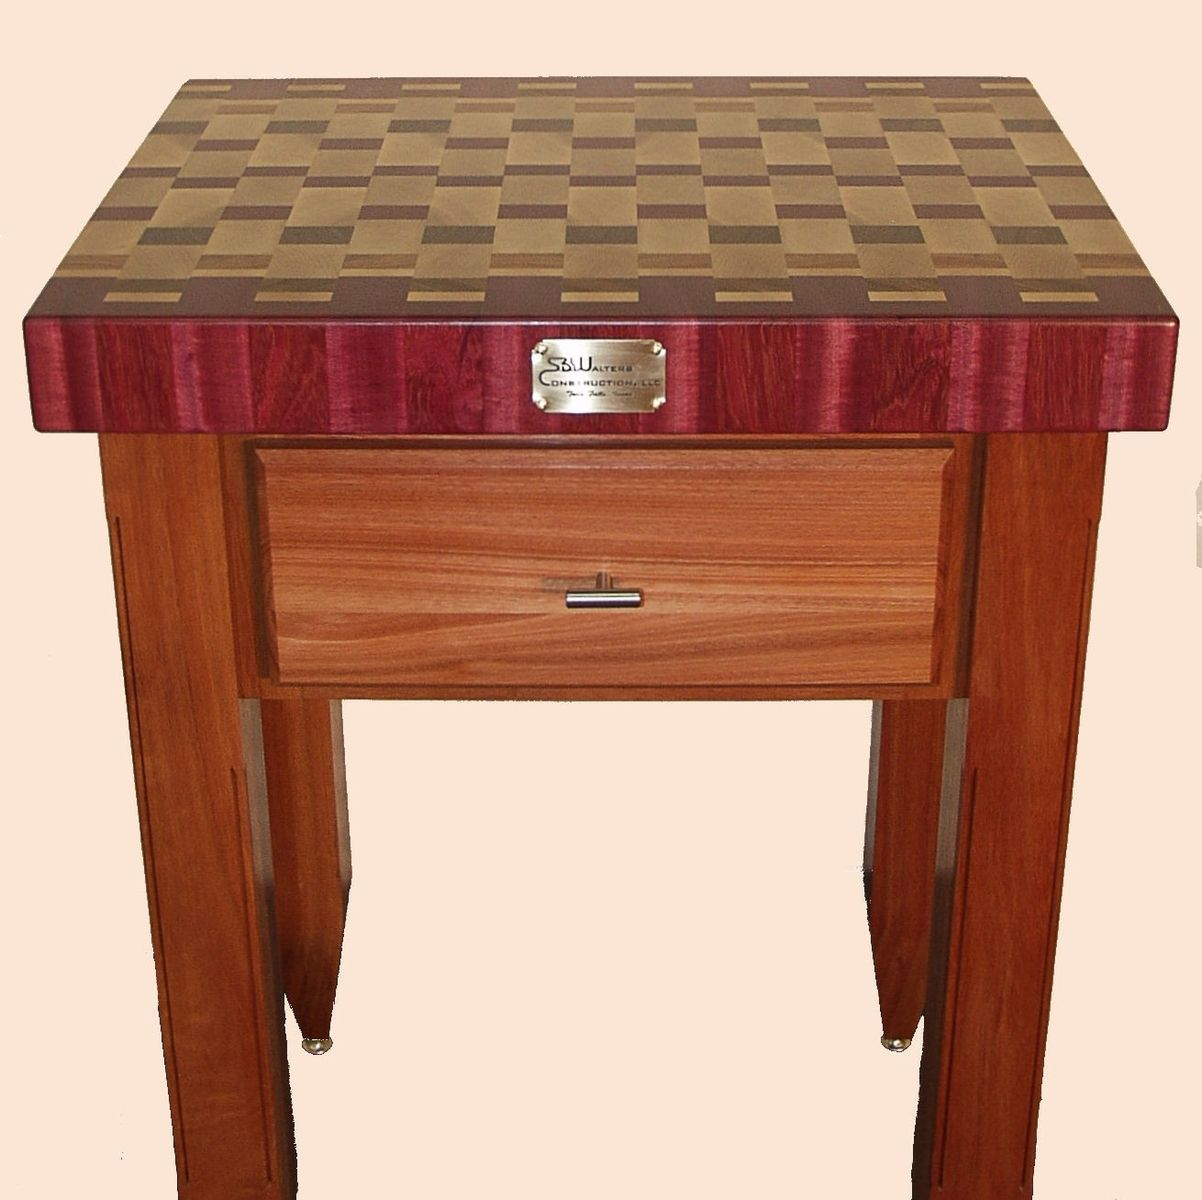 End Grain Butcher Block Kitchen Island : Custom Made End-Grain Butcher Block Island by Dissident Lumber Works CustomMade.com